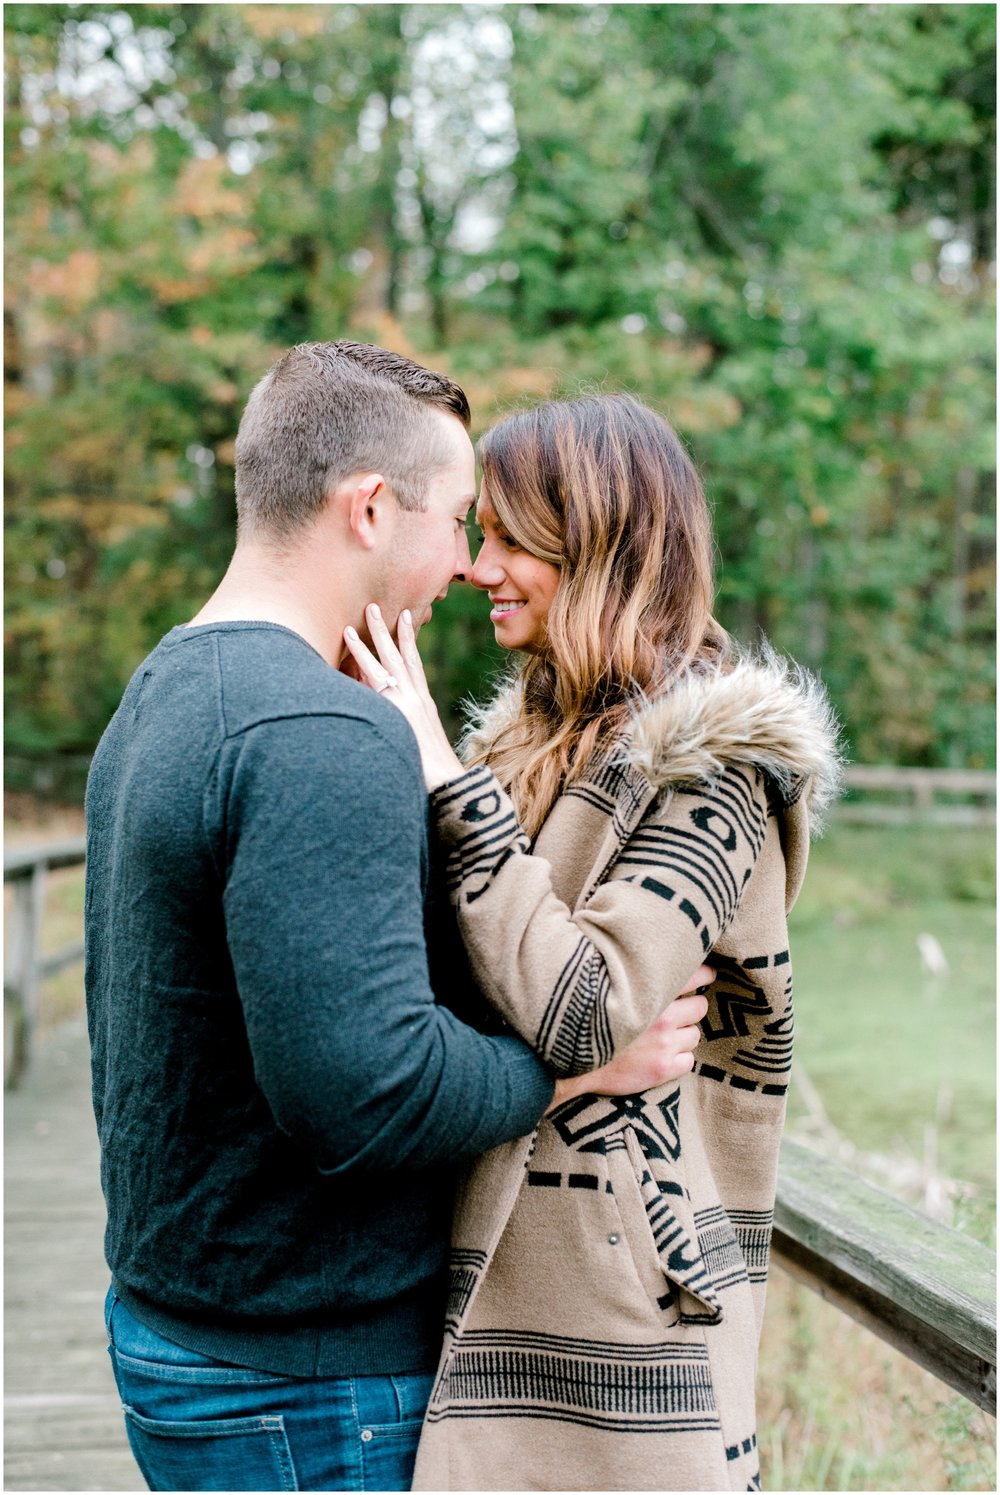 Fall Springton Manor Farm Engagement Session - Krista Brackin Photography_0032.jpg